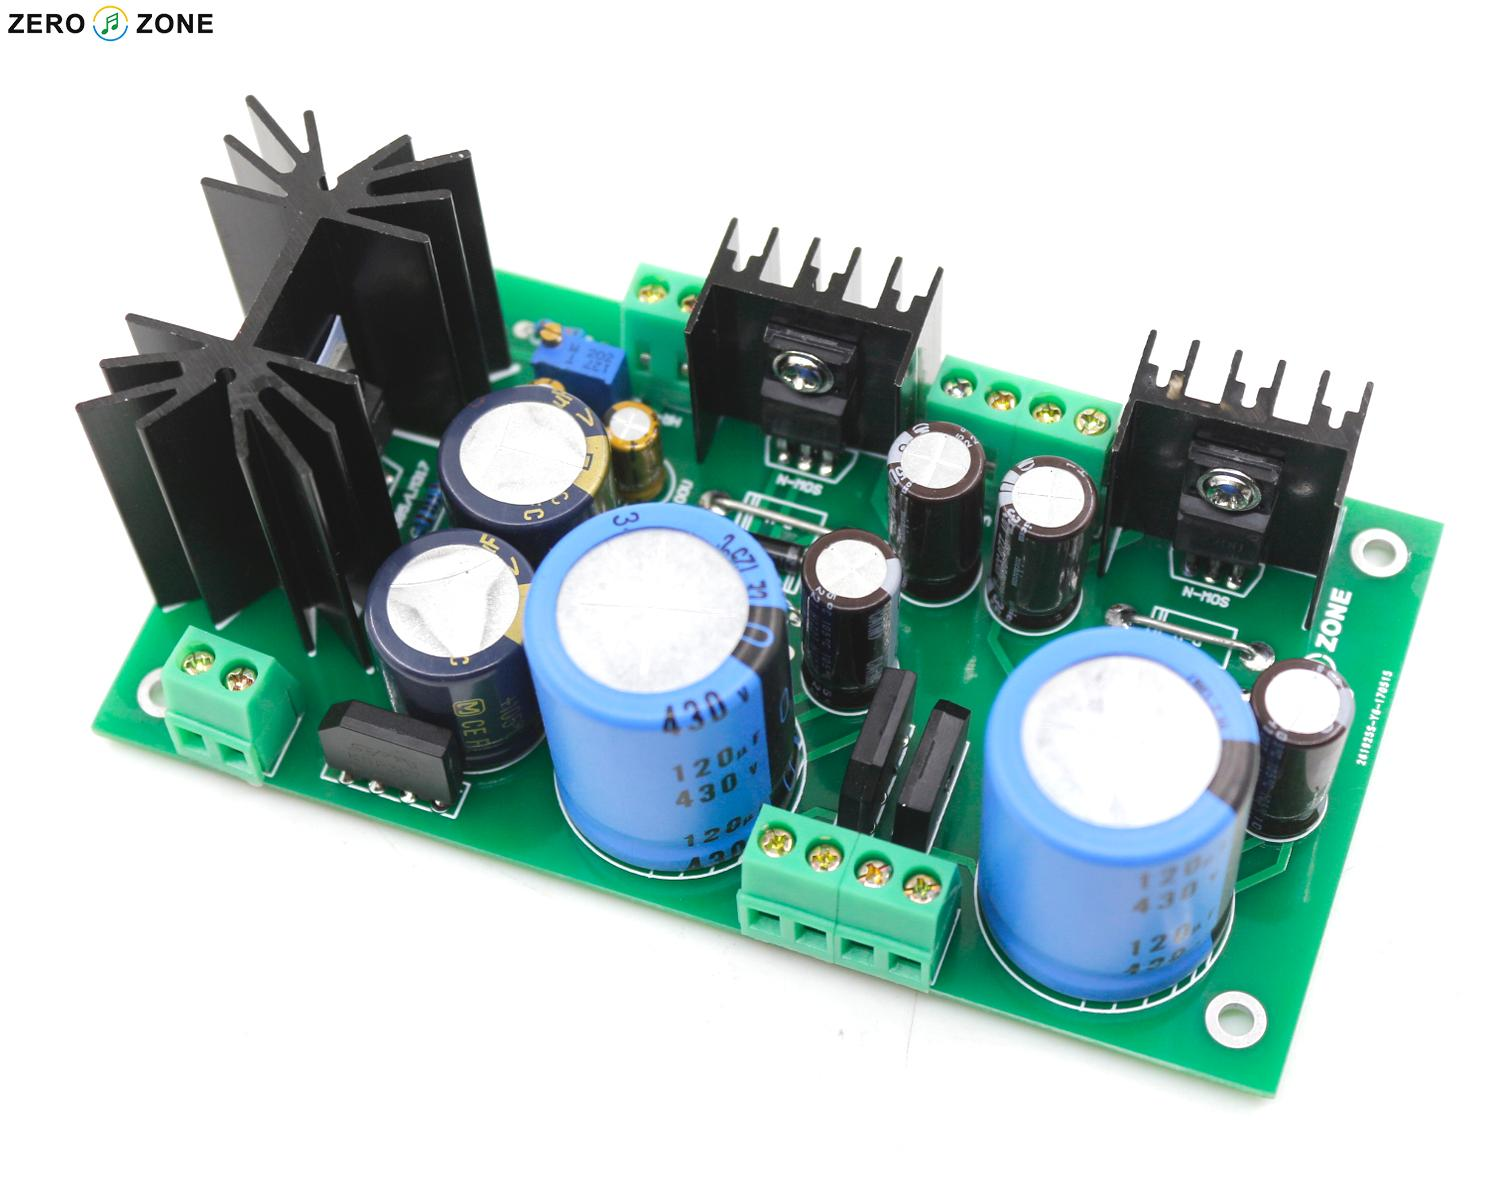 Dual High Voltage Regulator Power Supply Board DC280V+DC280V+DC12.6V  Filament PSU PCB / Kit Fr GG Tube Preamp